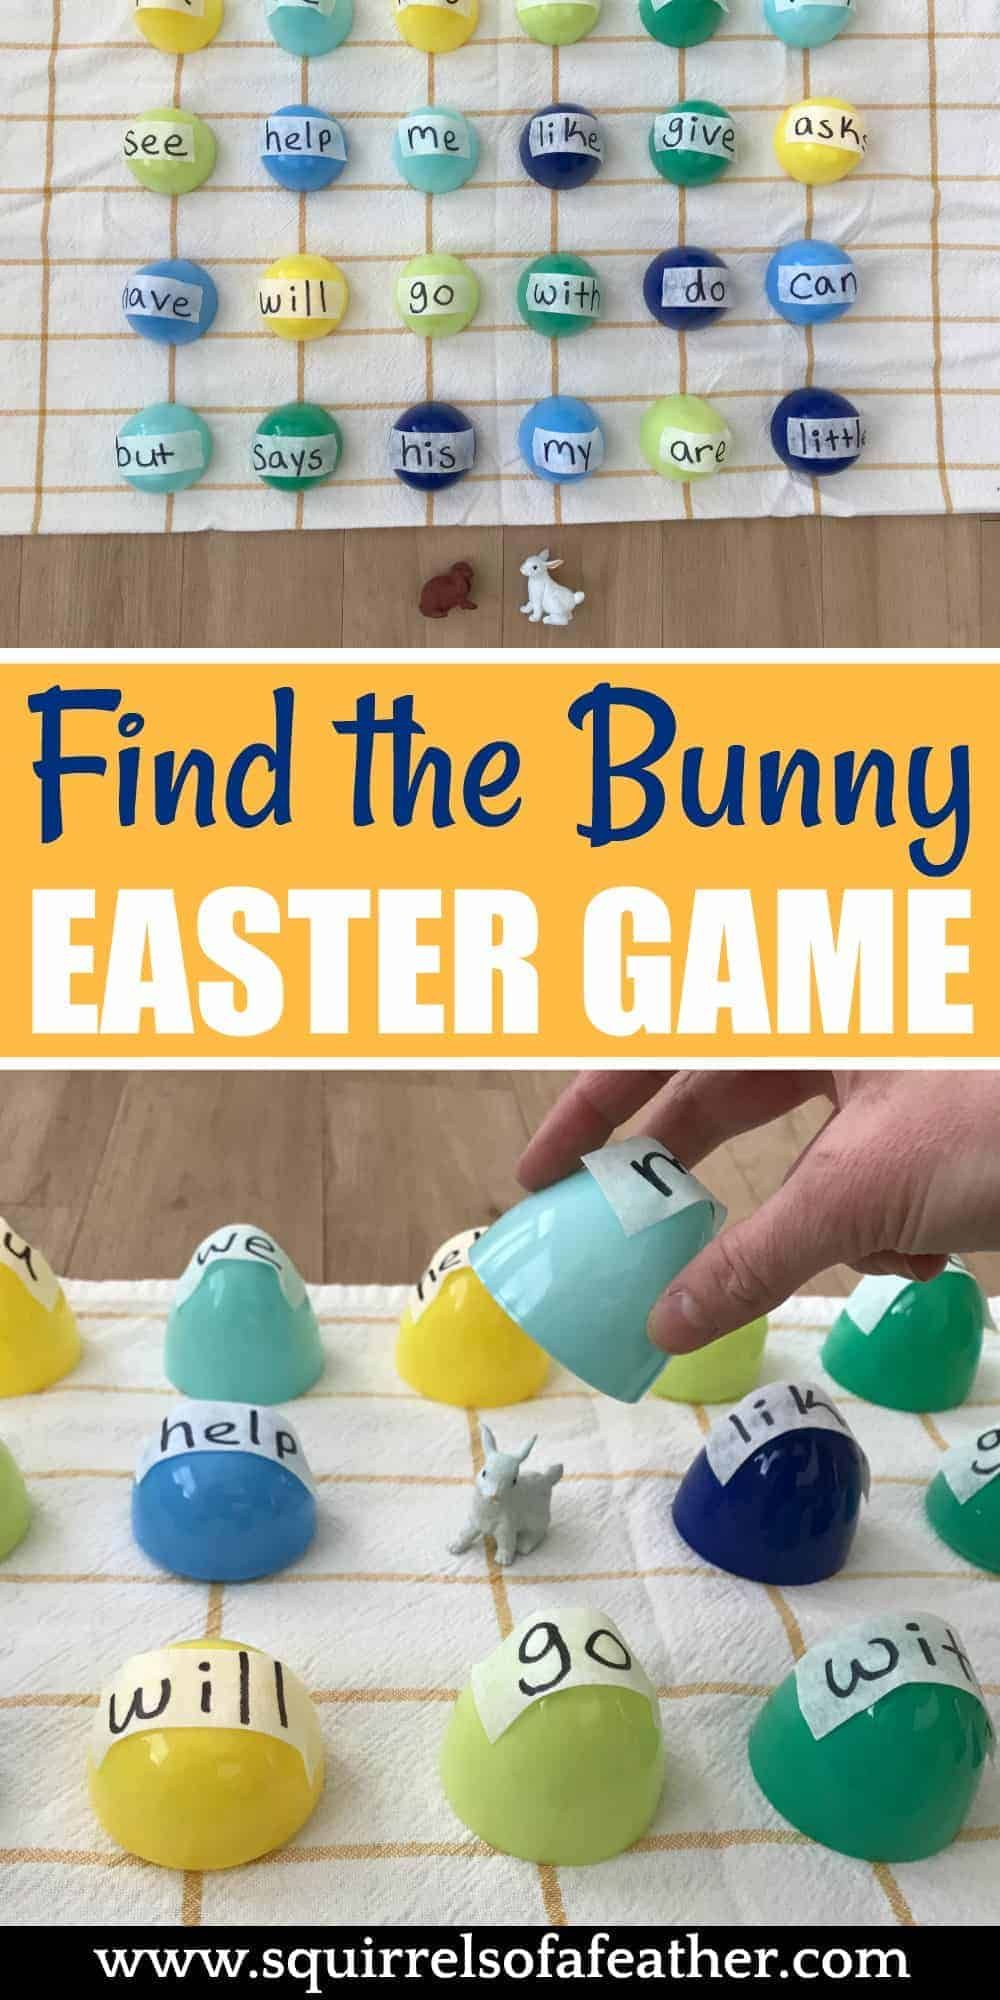 Super Fun Easter Egg Sight Words Activity to DIY: Find the Bunny!